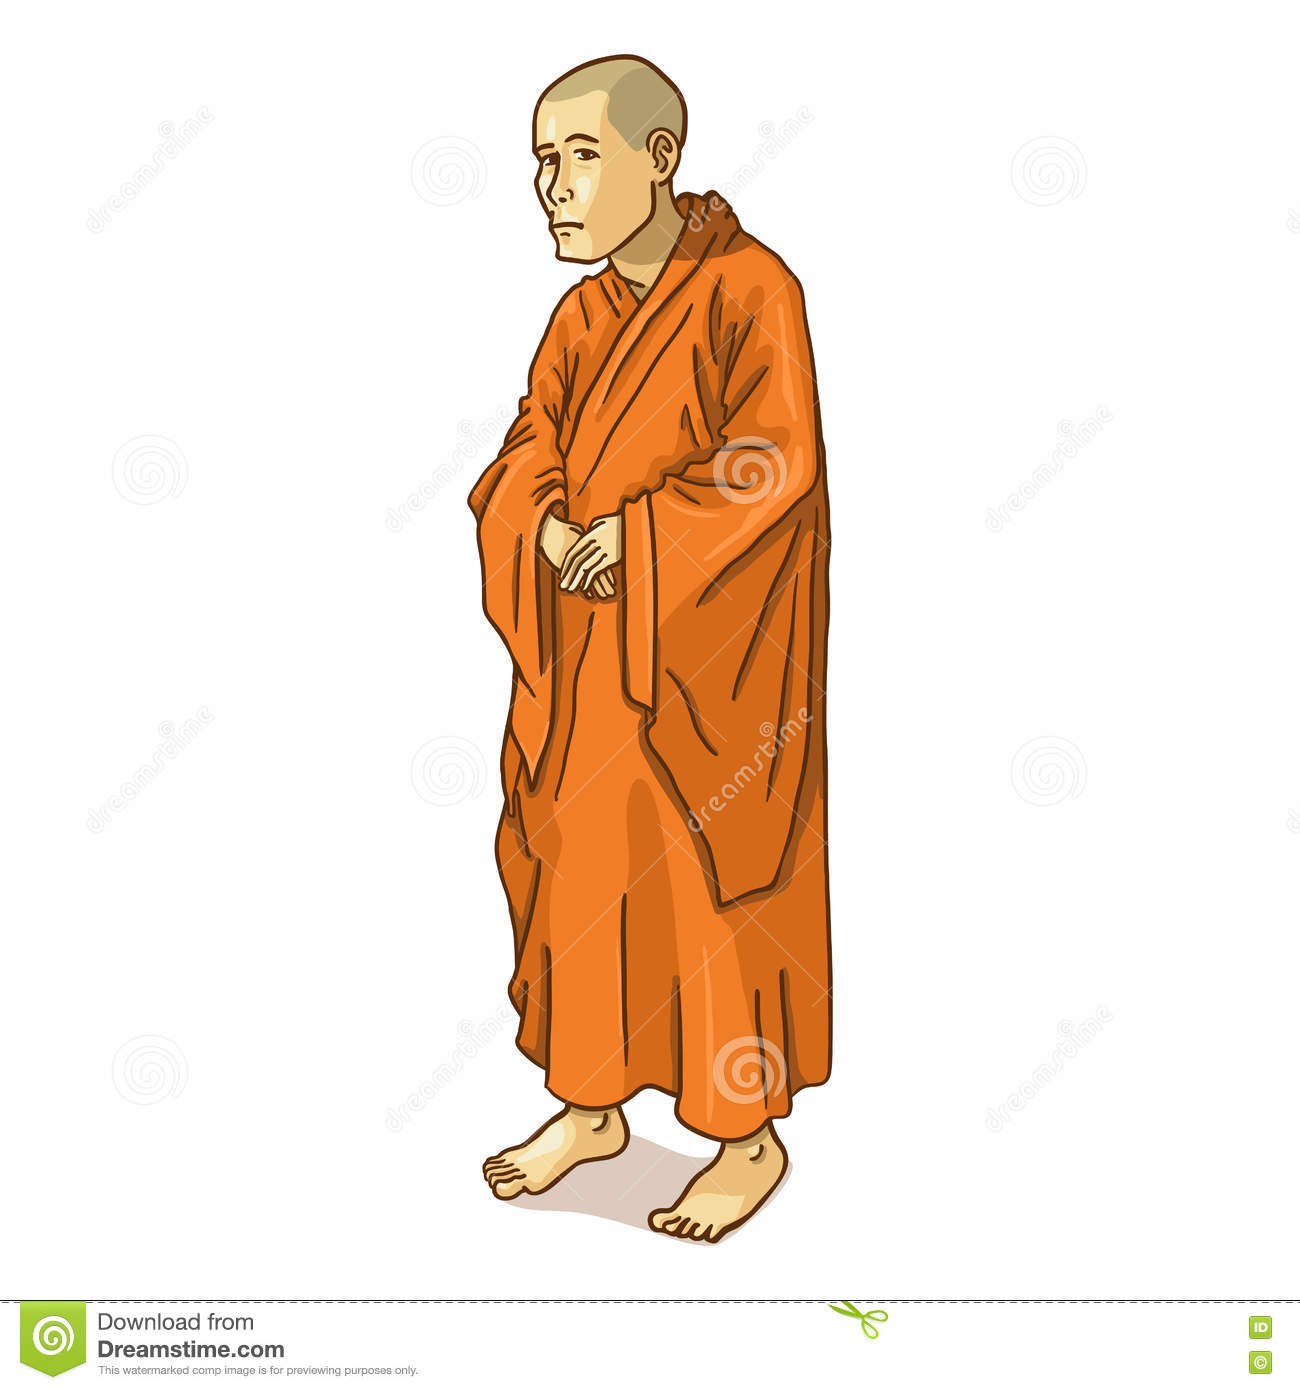 Swanton buddhist single men